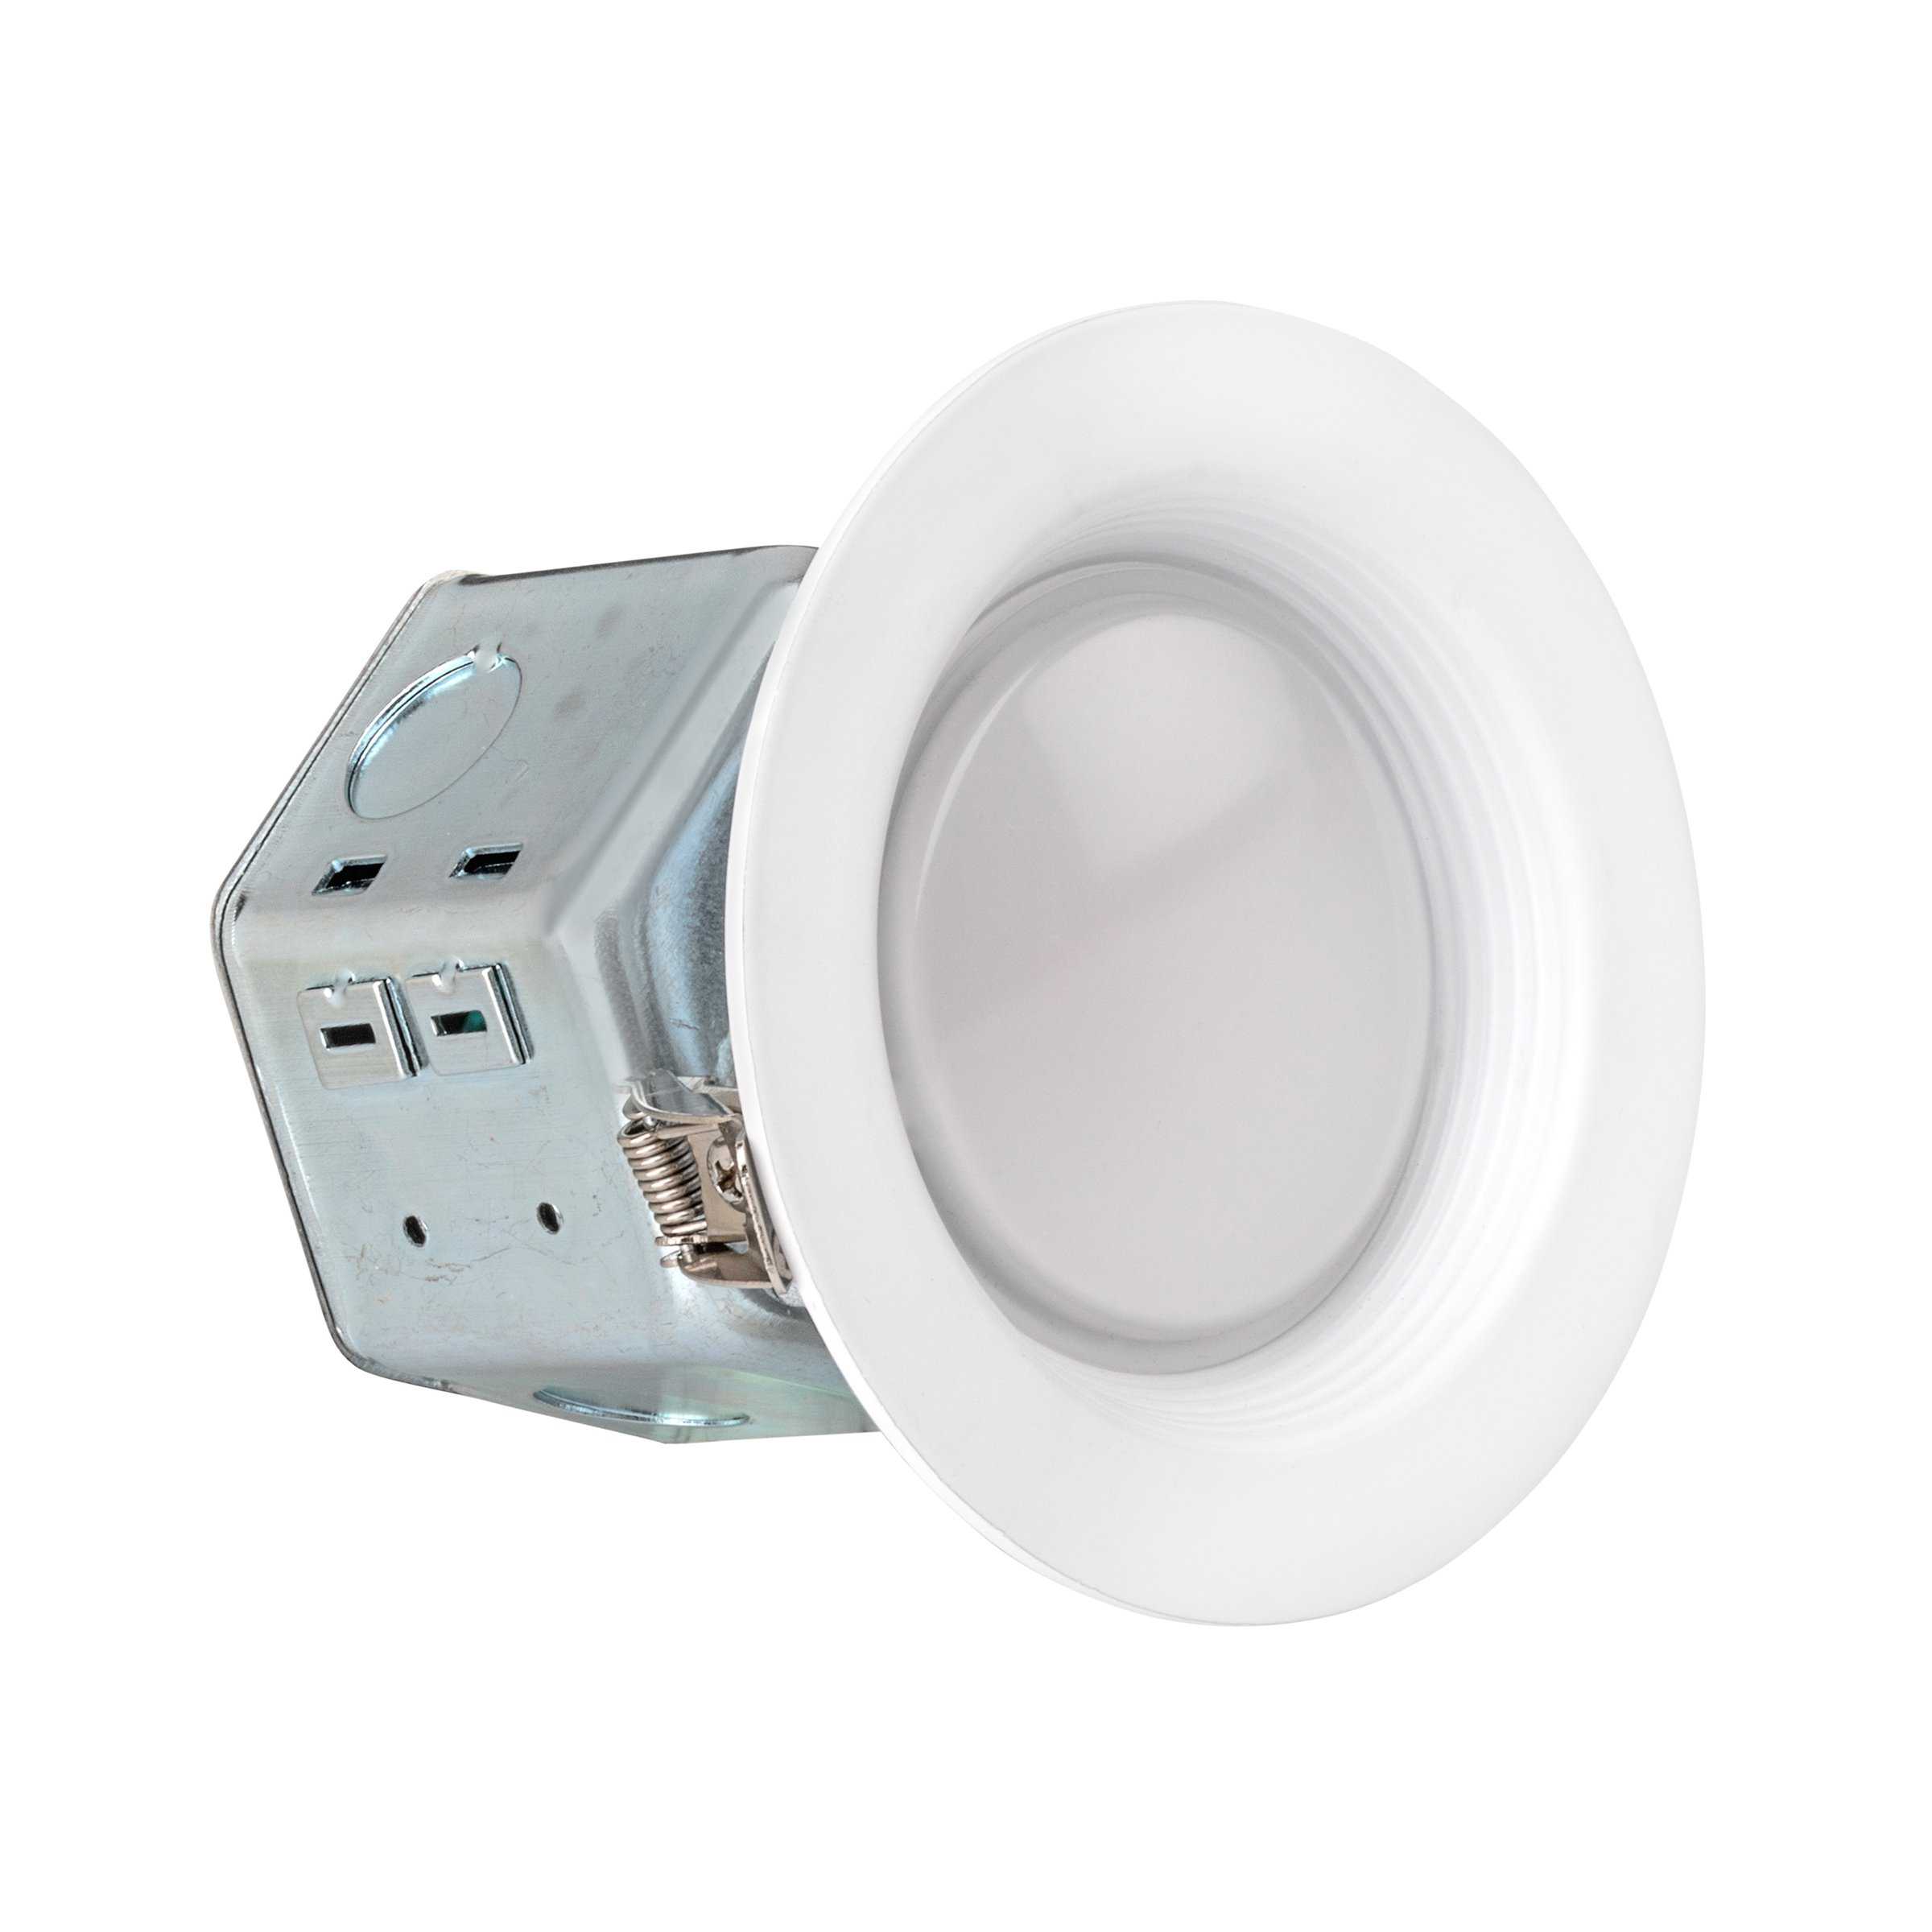 LEDQuant 4 Inch Junction Box LED Downlight, 10W (60W Equivalent), 3000K Soft White, ENERGY STAR, 700 Lumens, Wet Rated, Recessed Ceiling Light, 120V, No Can Needed, ETL Listed (3000K (Soft White))